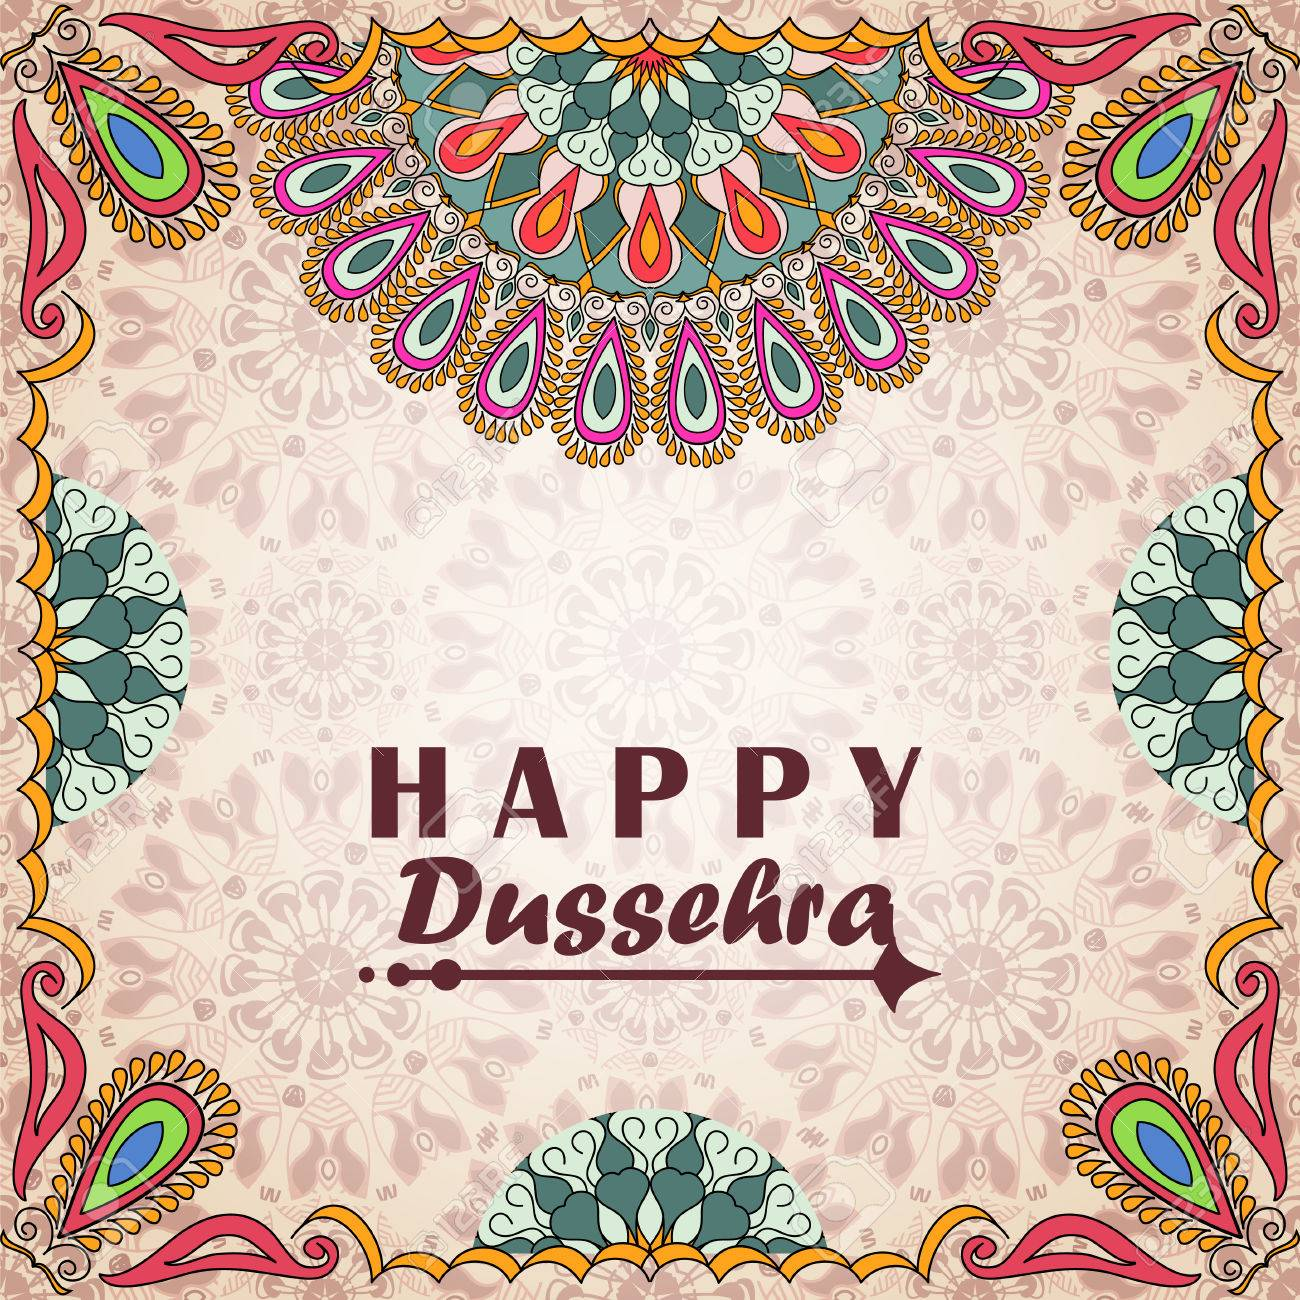 Greeting card to indian festival vijayadashami happy dussehra greeting card to indian festival vijayadashami happy dussehra congratulations background with text and mandalas m4hsunfo